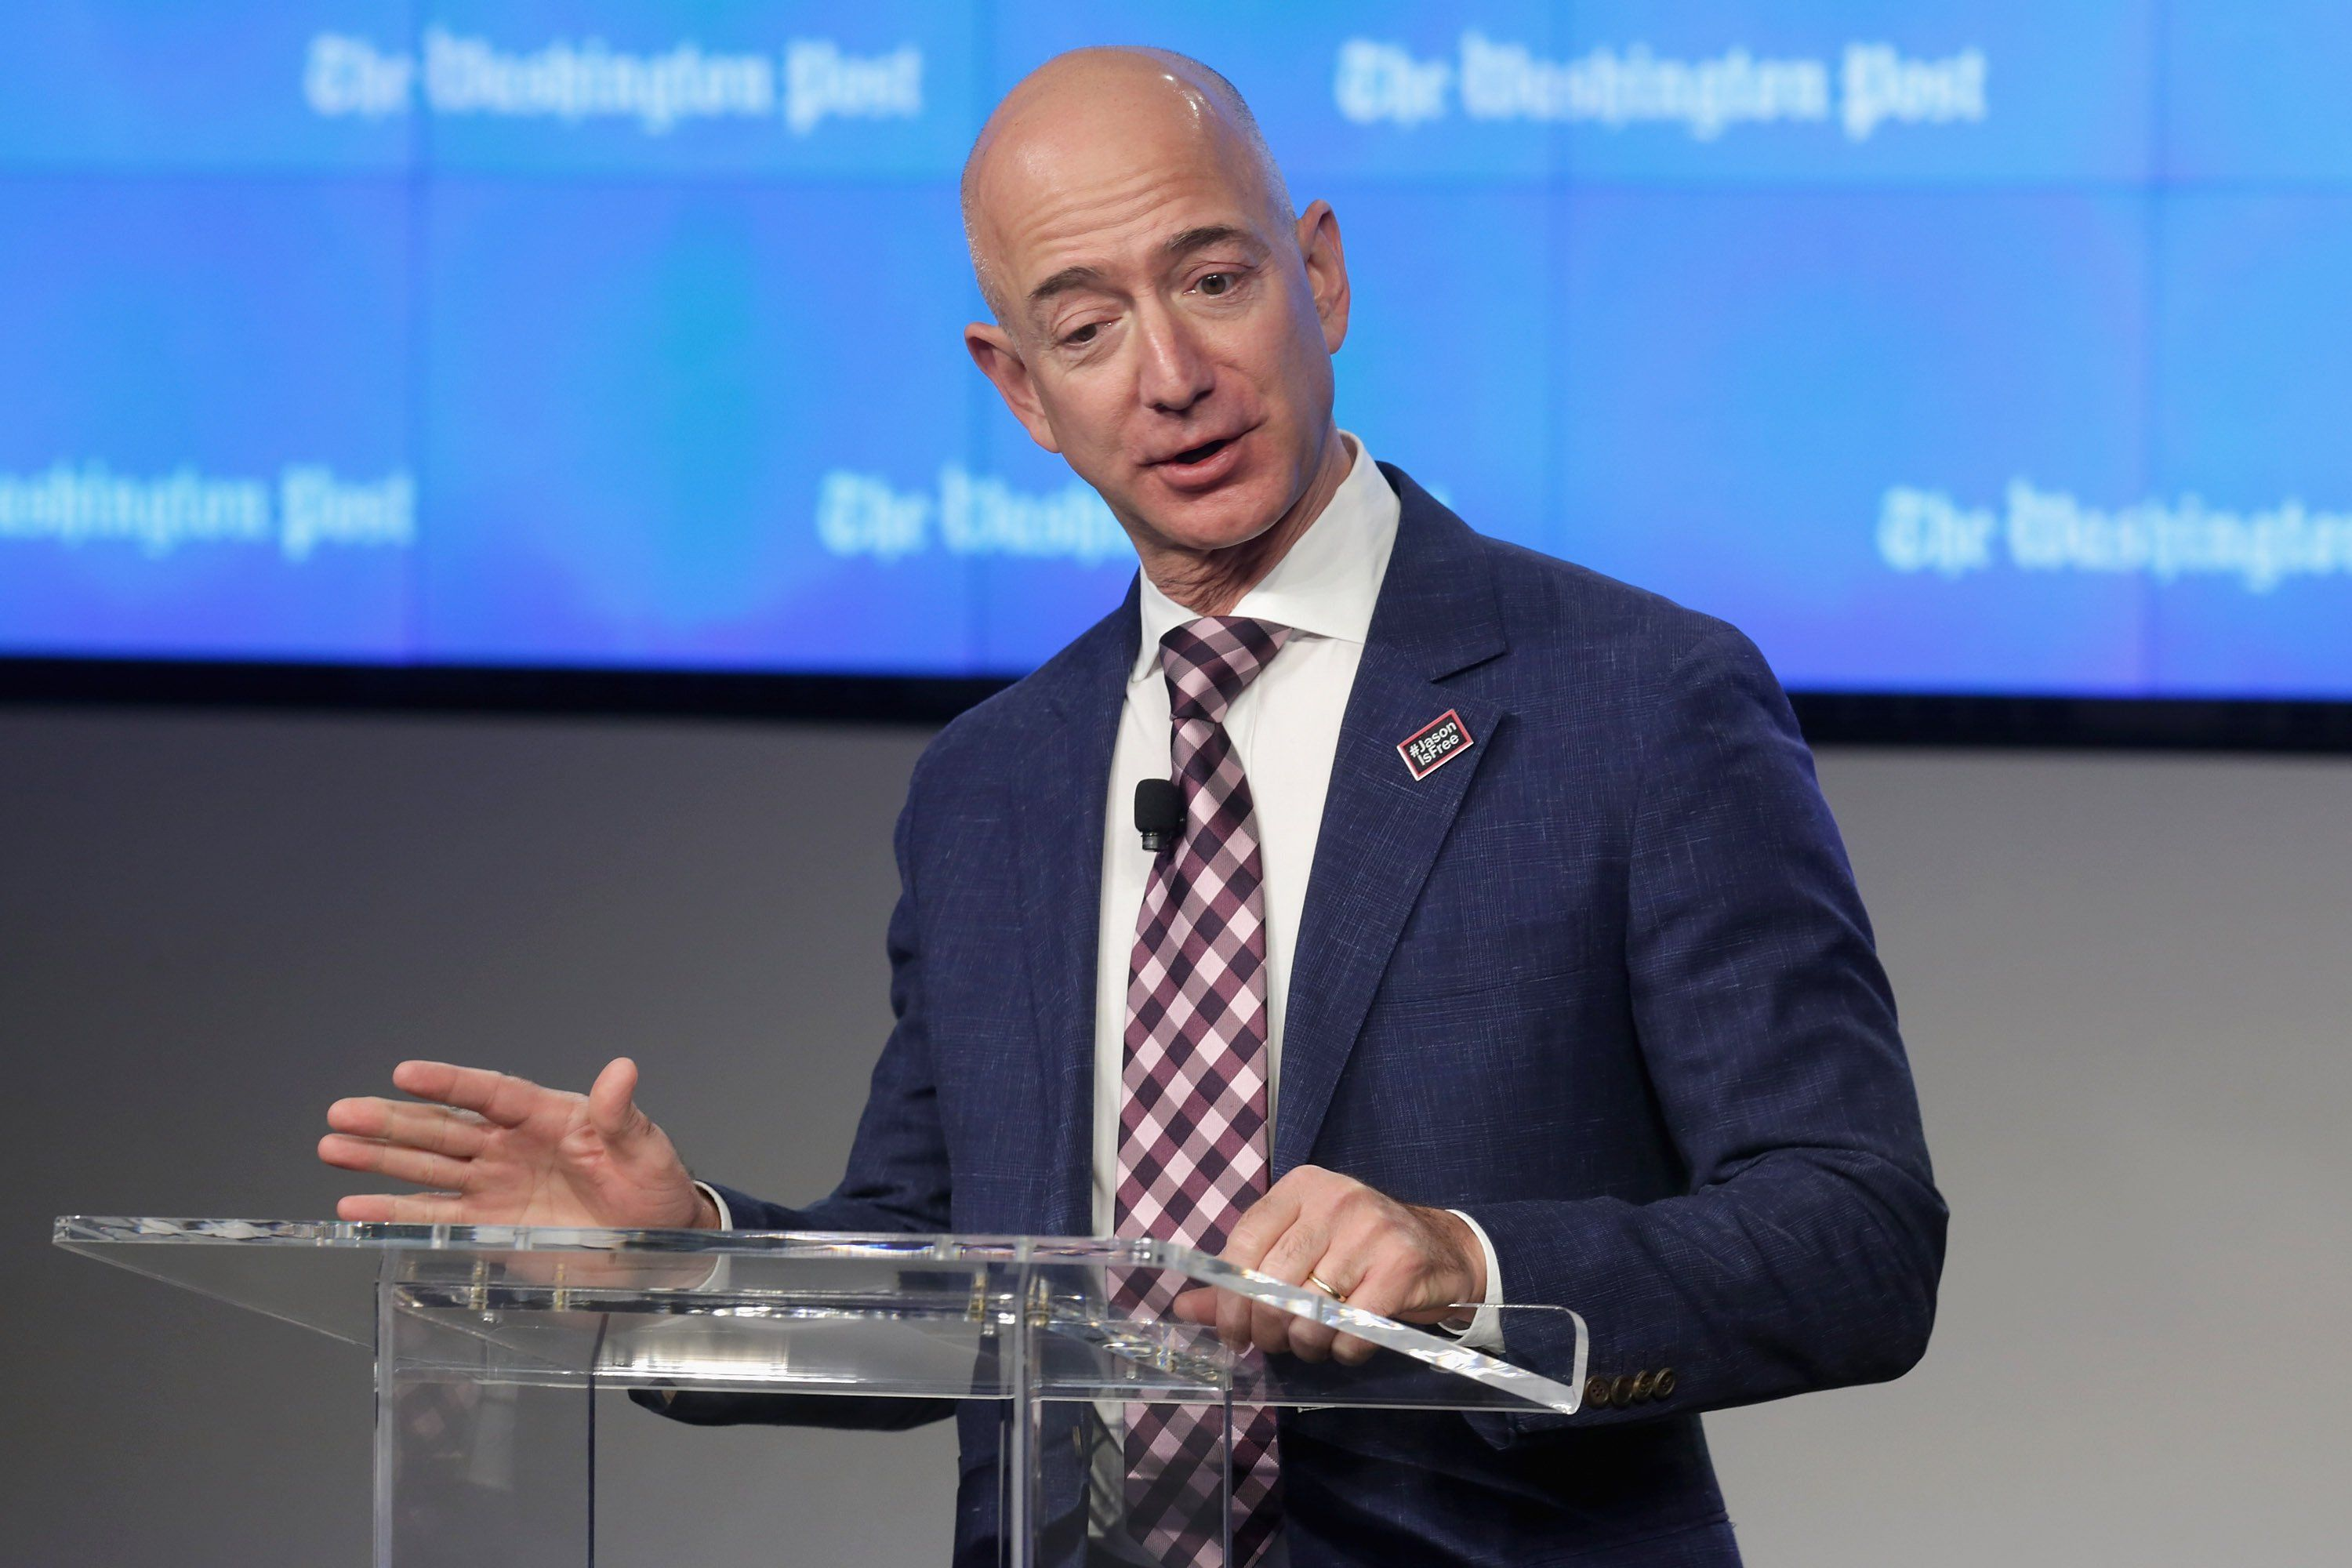 It Takes Jeff Bezos 26 Seconds to Make What One of His